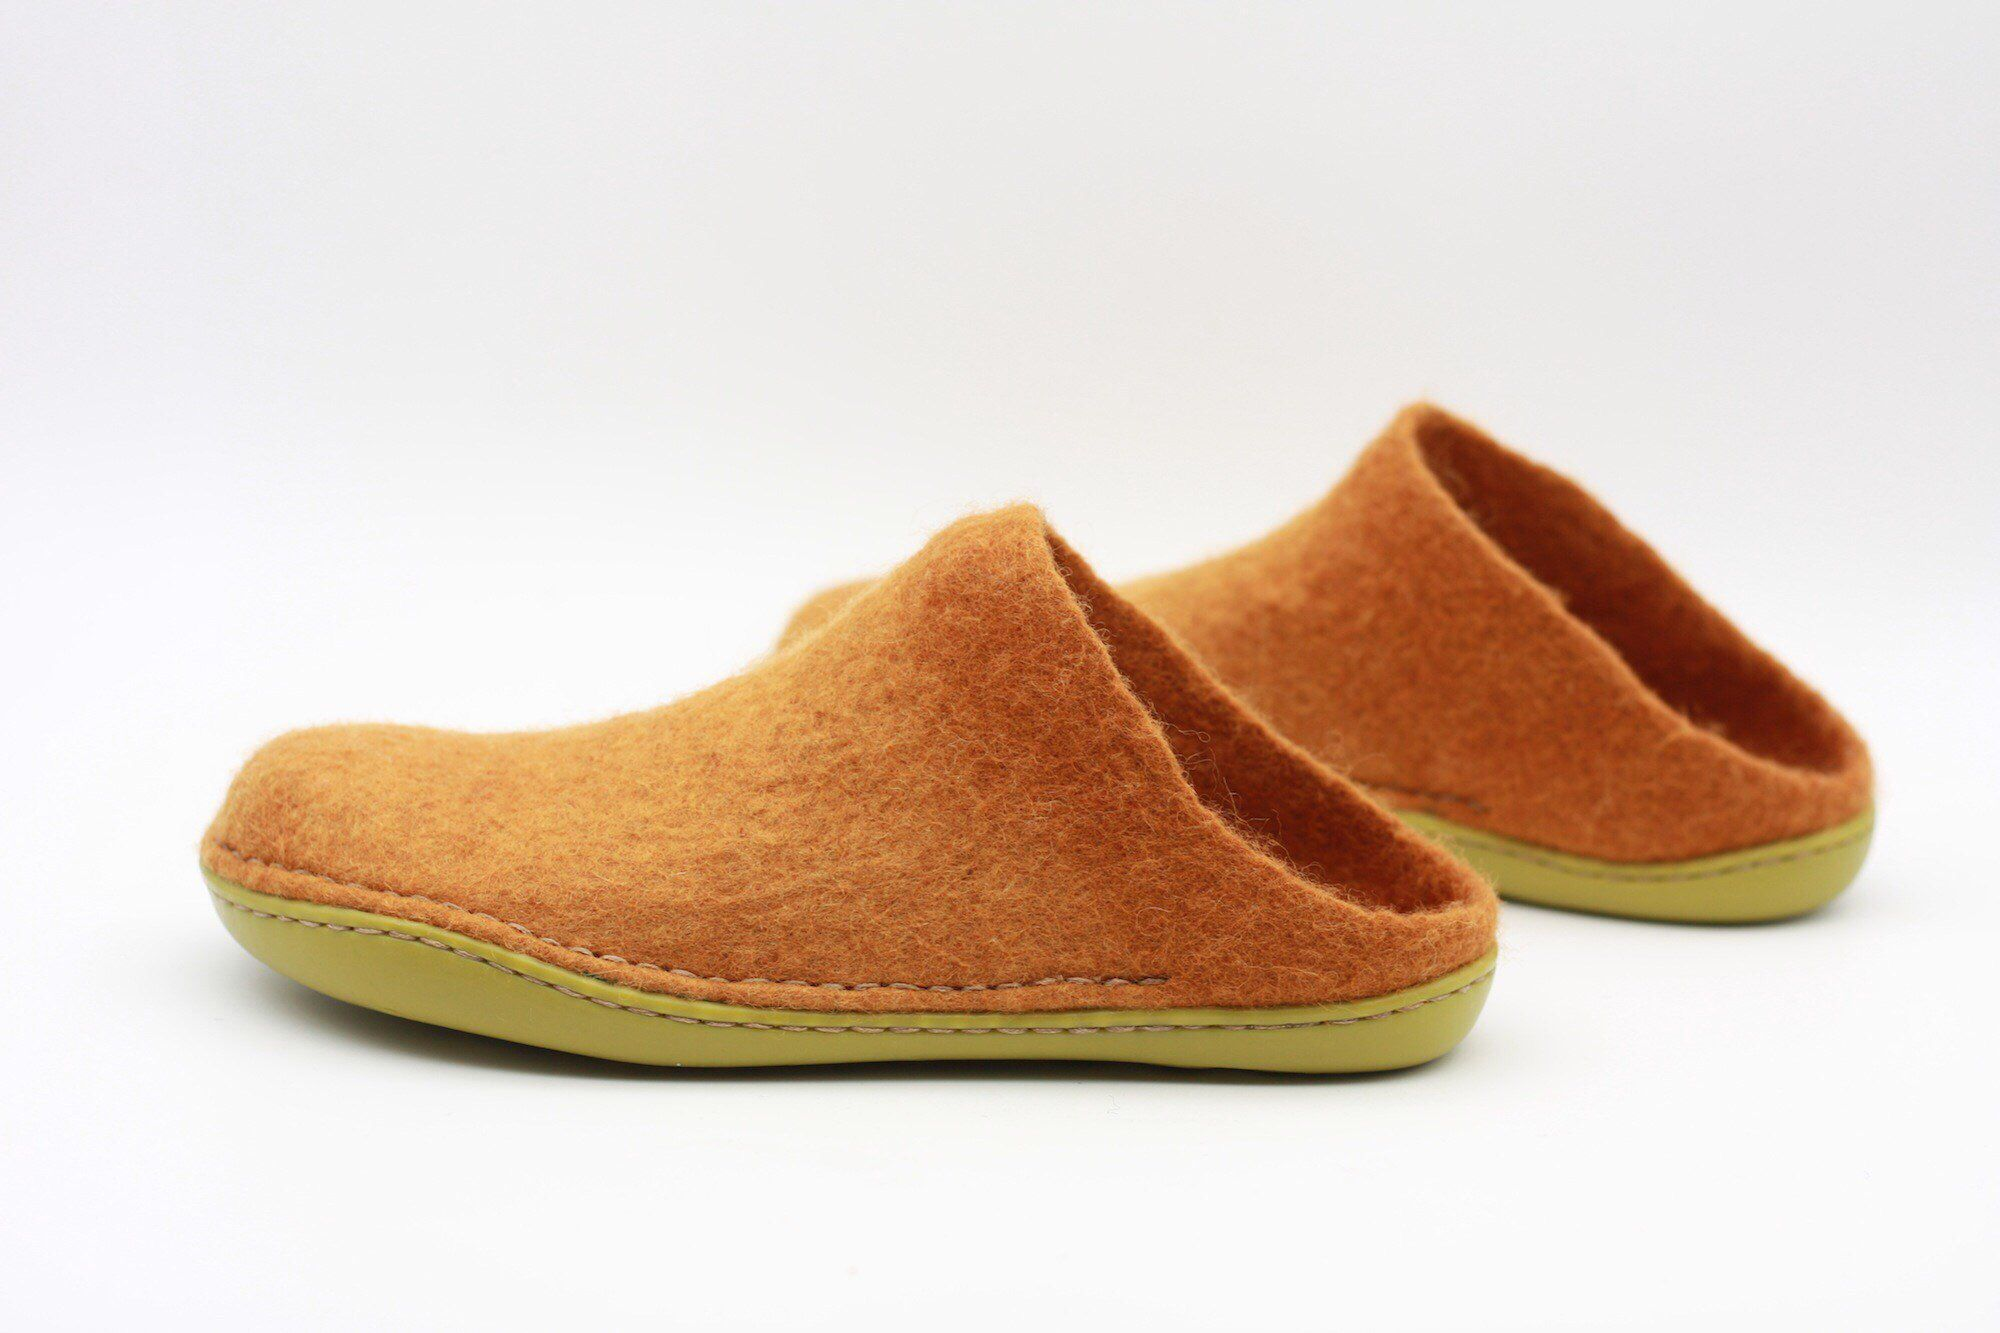 2762bacccce43 LUCIELALUNE Spring women barefoot shoes handmade felted merino wool ...